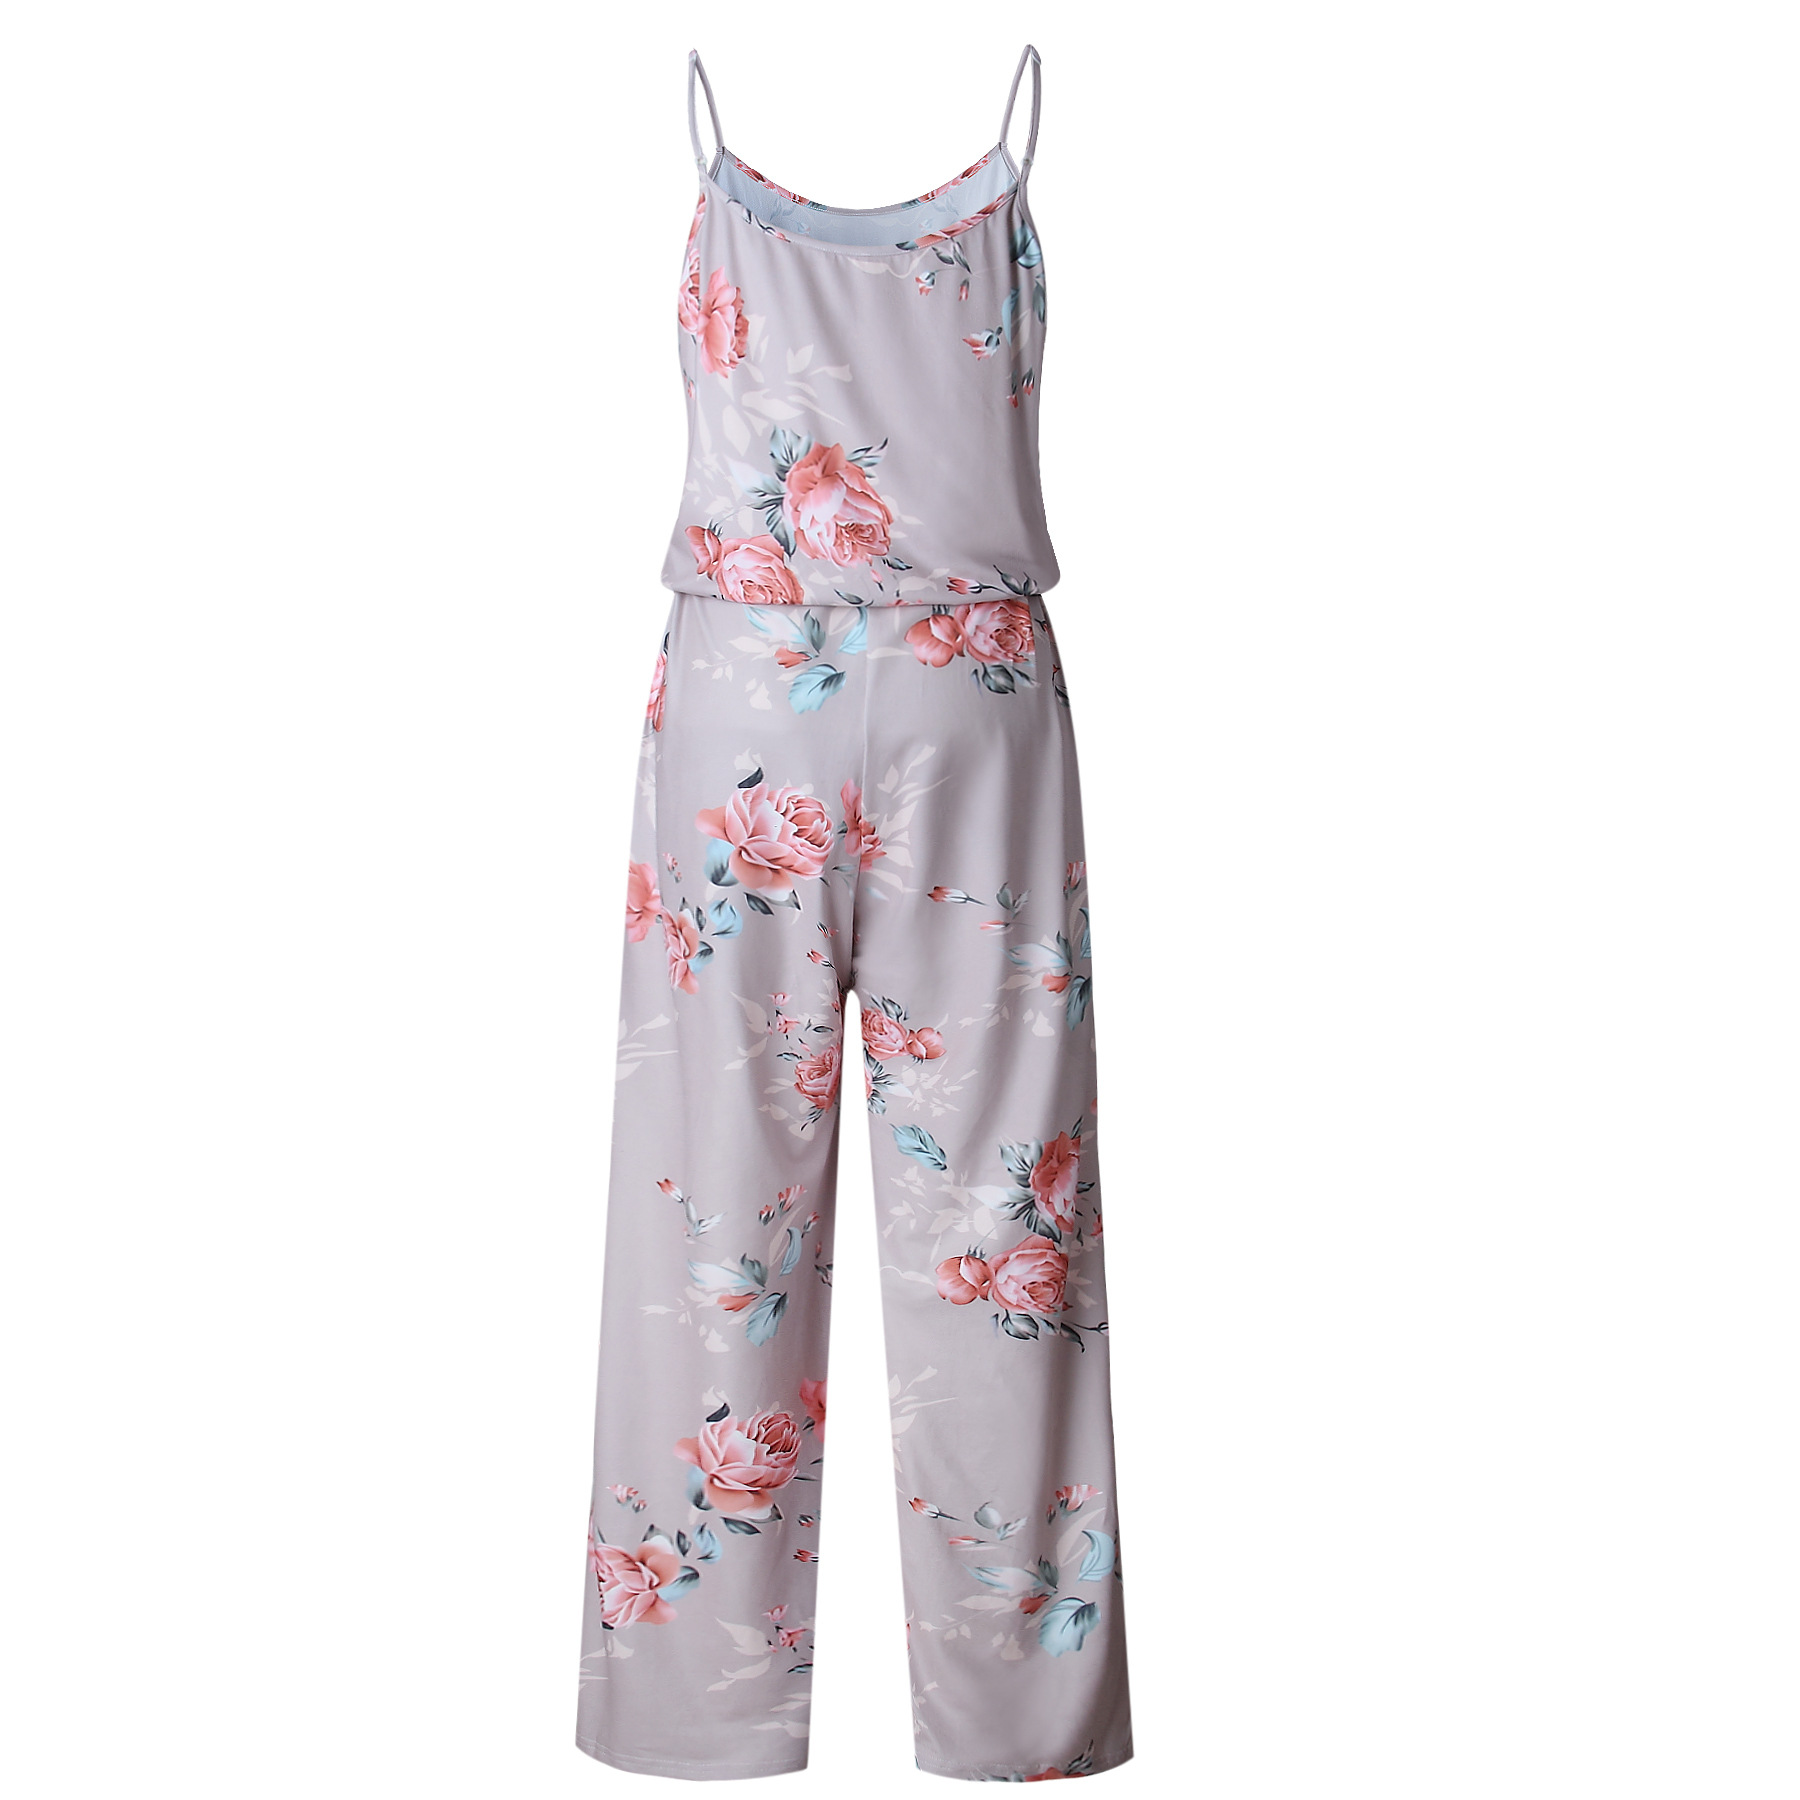 Spaghetti Strap Jumpsuit Women 2018 Summer Long Pants Floral Print Rompers Beach Casual Jumpsuits Sleeveless Sashes Playsuits 33